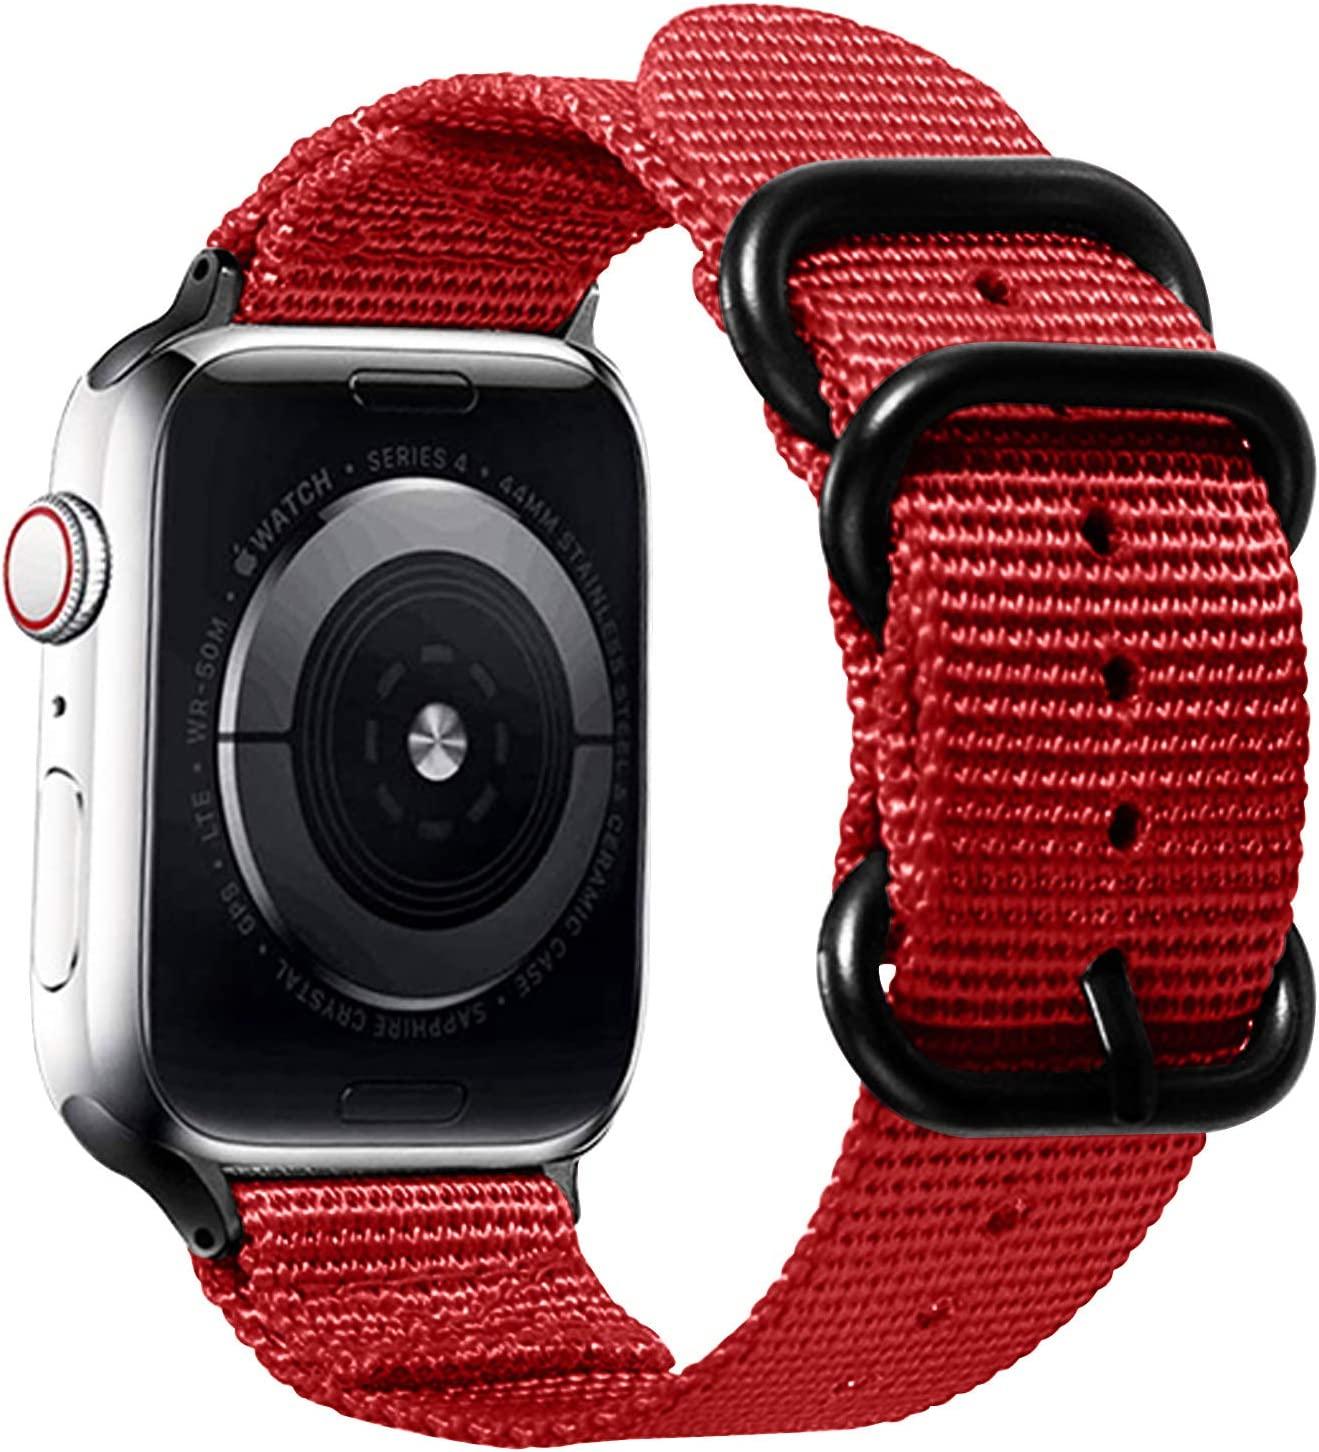 Watpro Compatible with Apple Watch Band 38mm 40mm 42mm 44mm Women Men Nylon Rugged Replacement iWatch Band Military-Style Buckle Grey Adapters for Sport Series 5 4 3 2 1 (1-Red, 42MM/44MM)